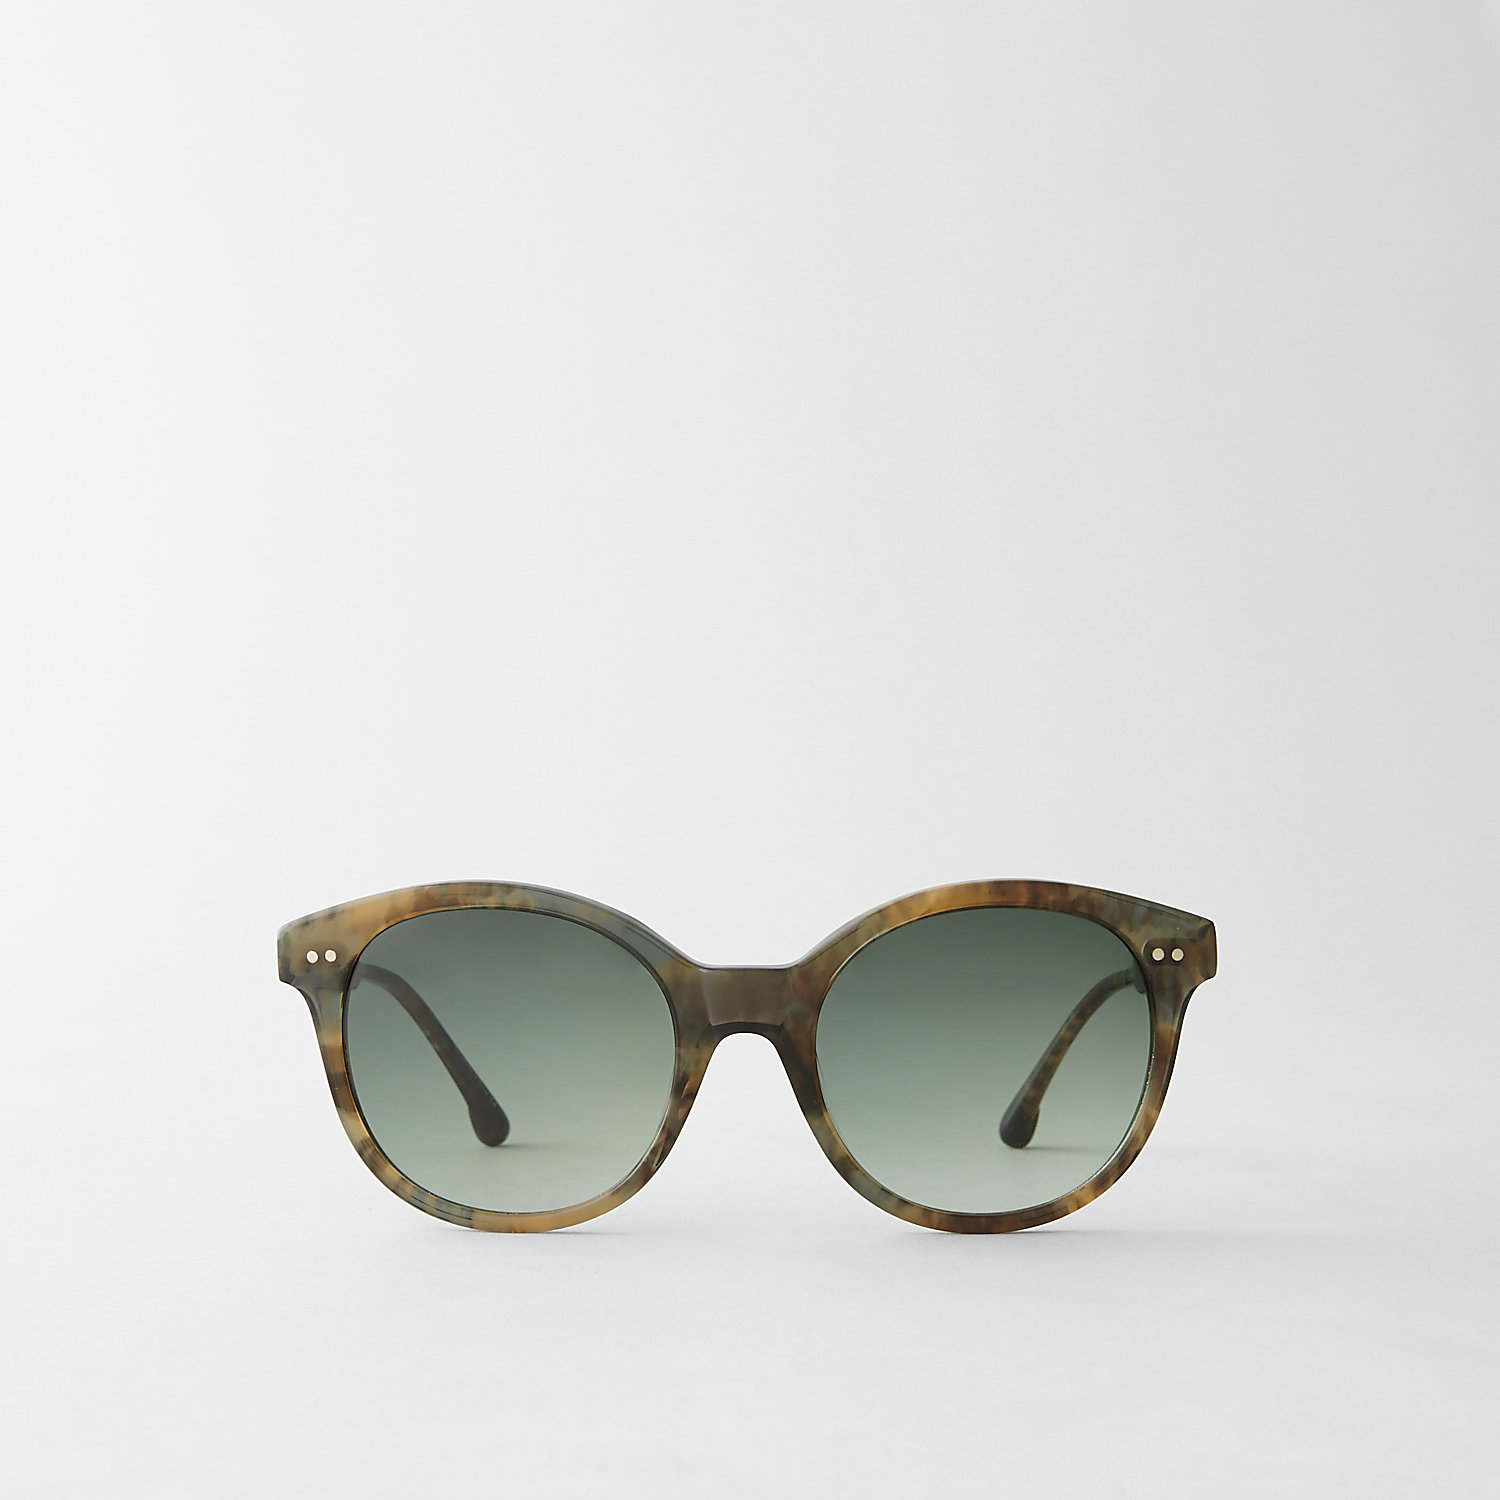 GREEN HEATHER DIXIE SUNGLASSES